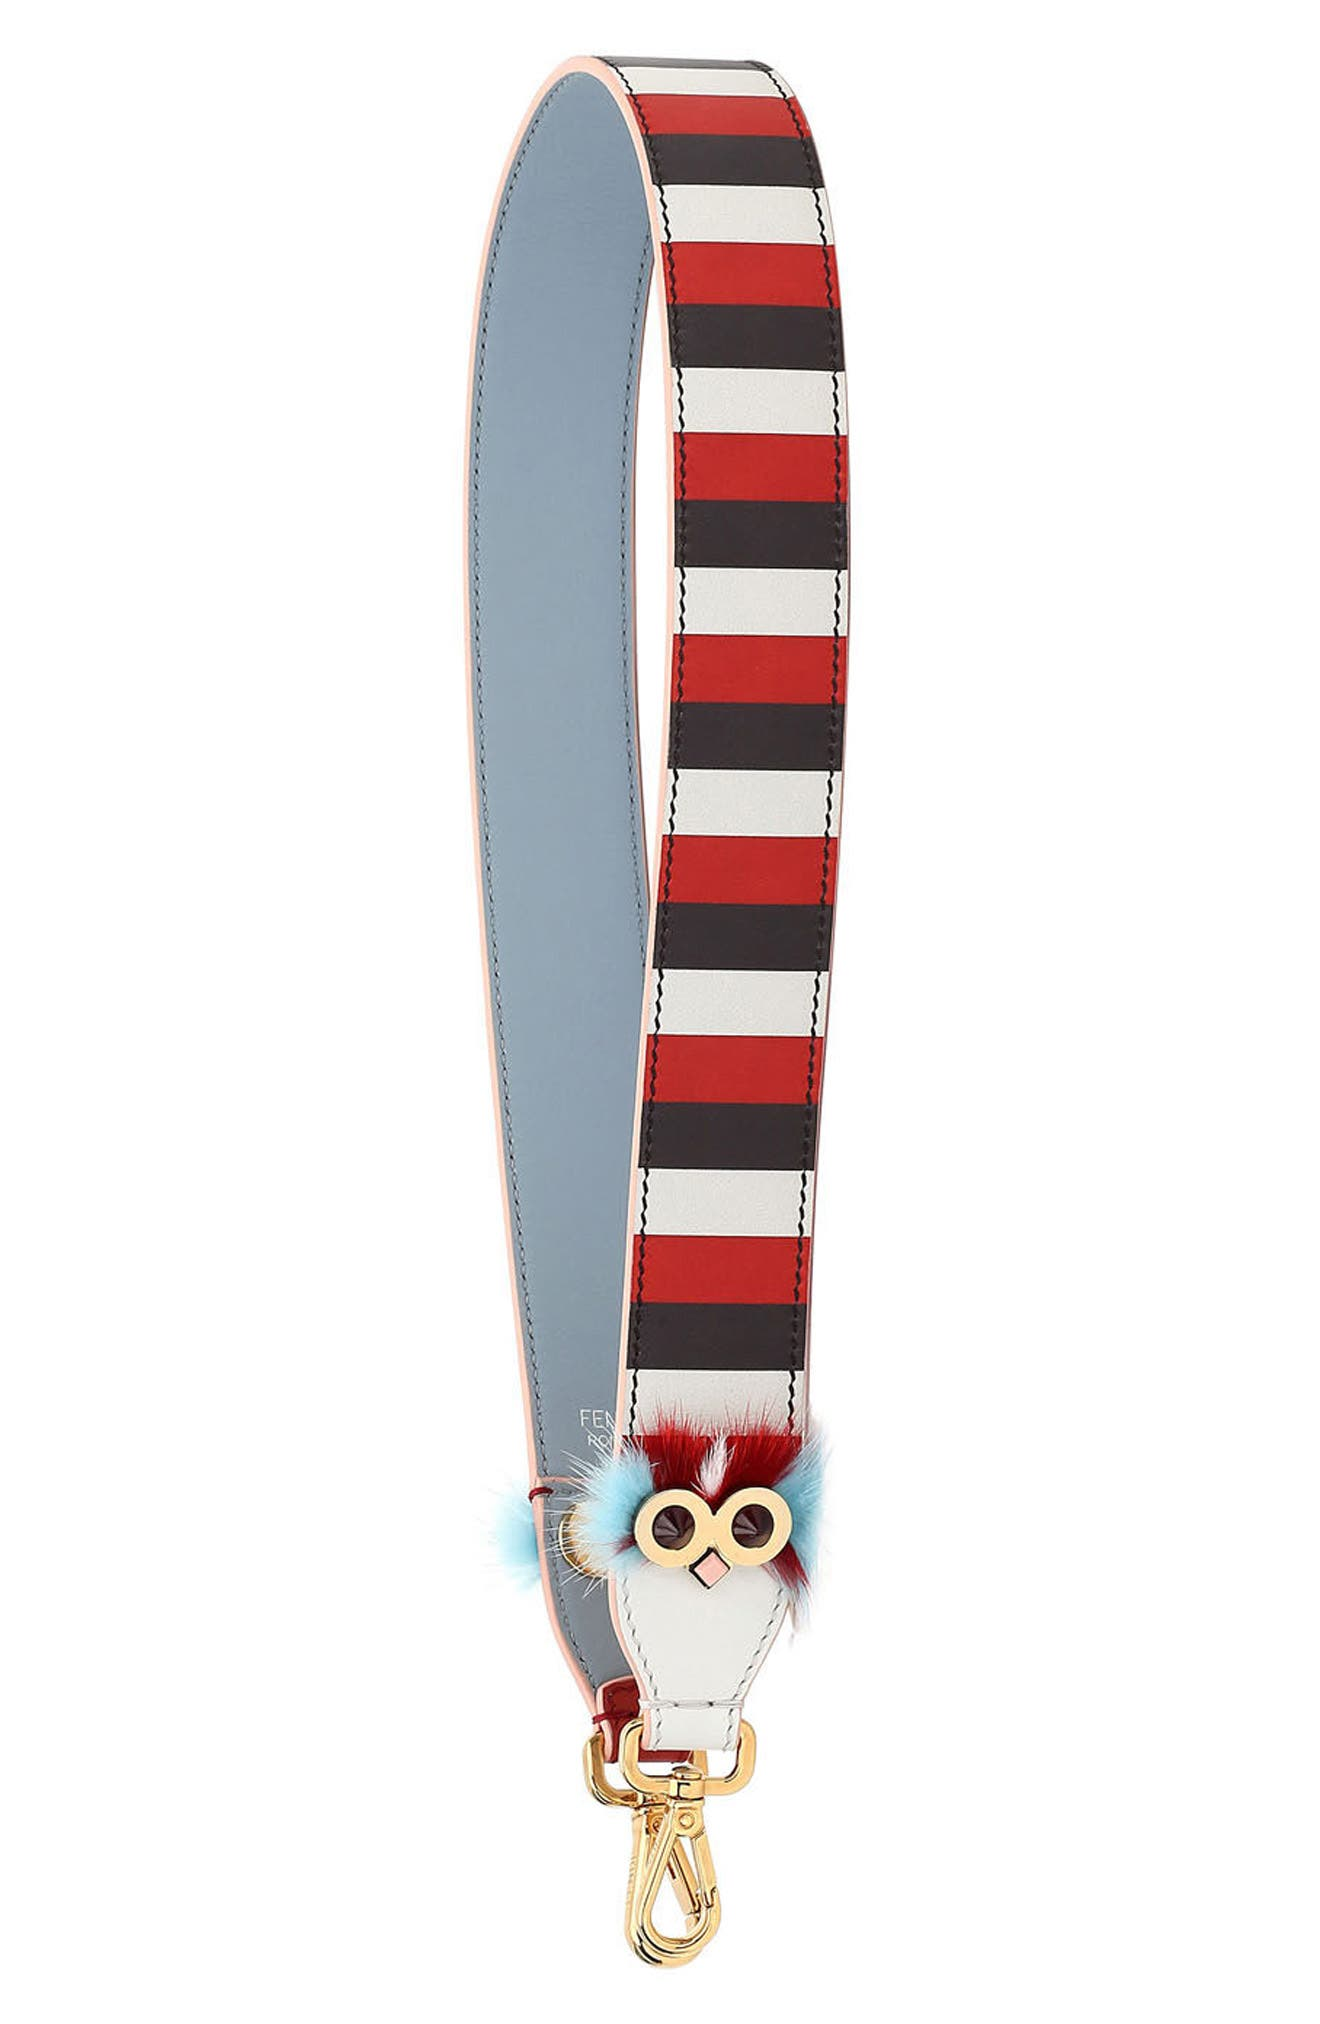 Strap You Striped Leather Guitar Bag Strap with Genuine Mink Fur Trim,                         Main,                         color, WHITE/BLOODY MARY/MULTI